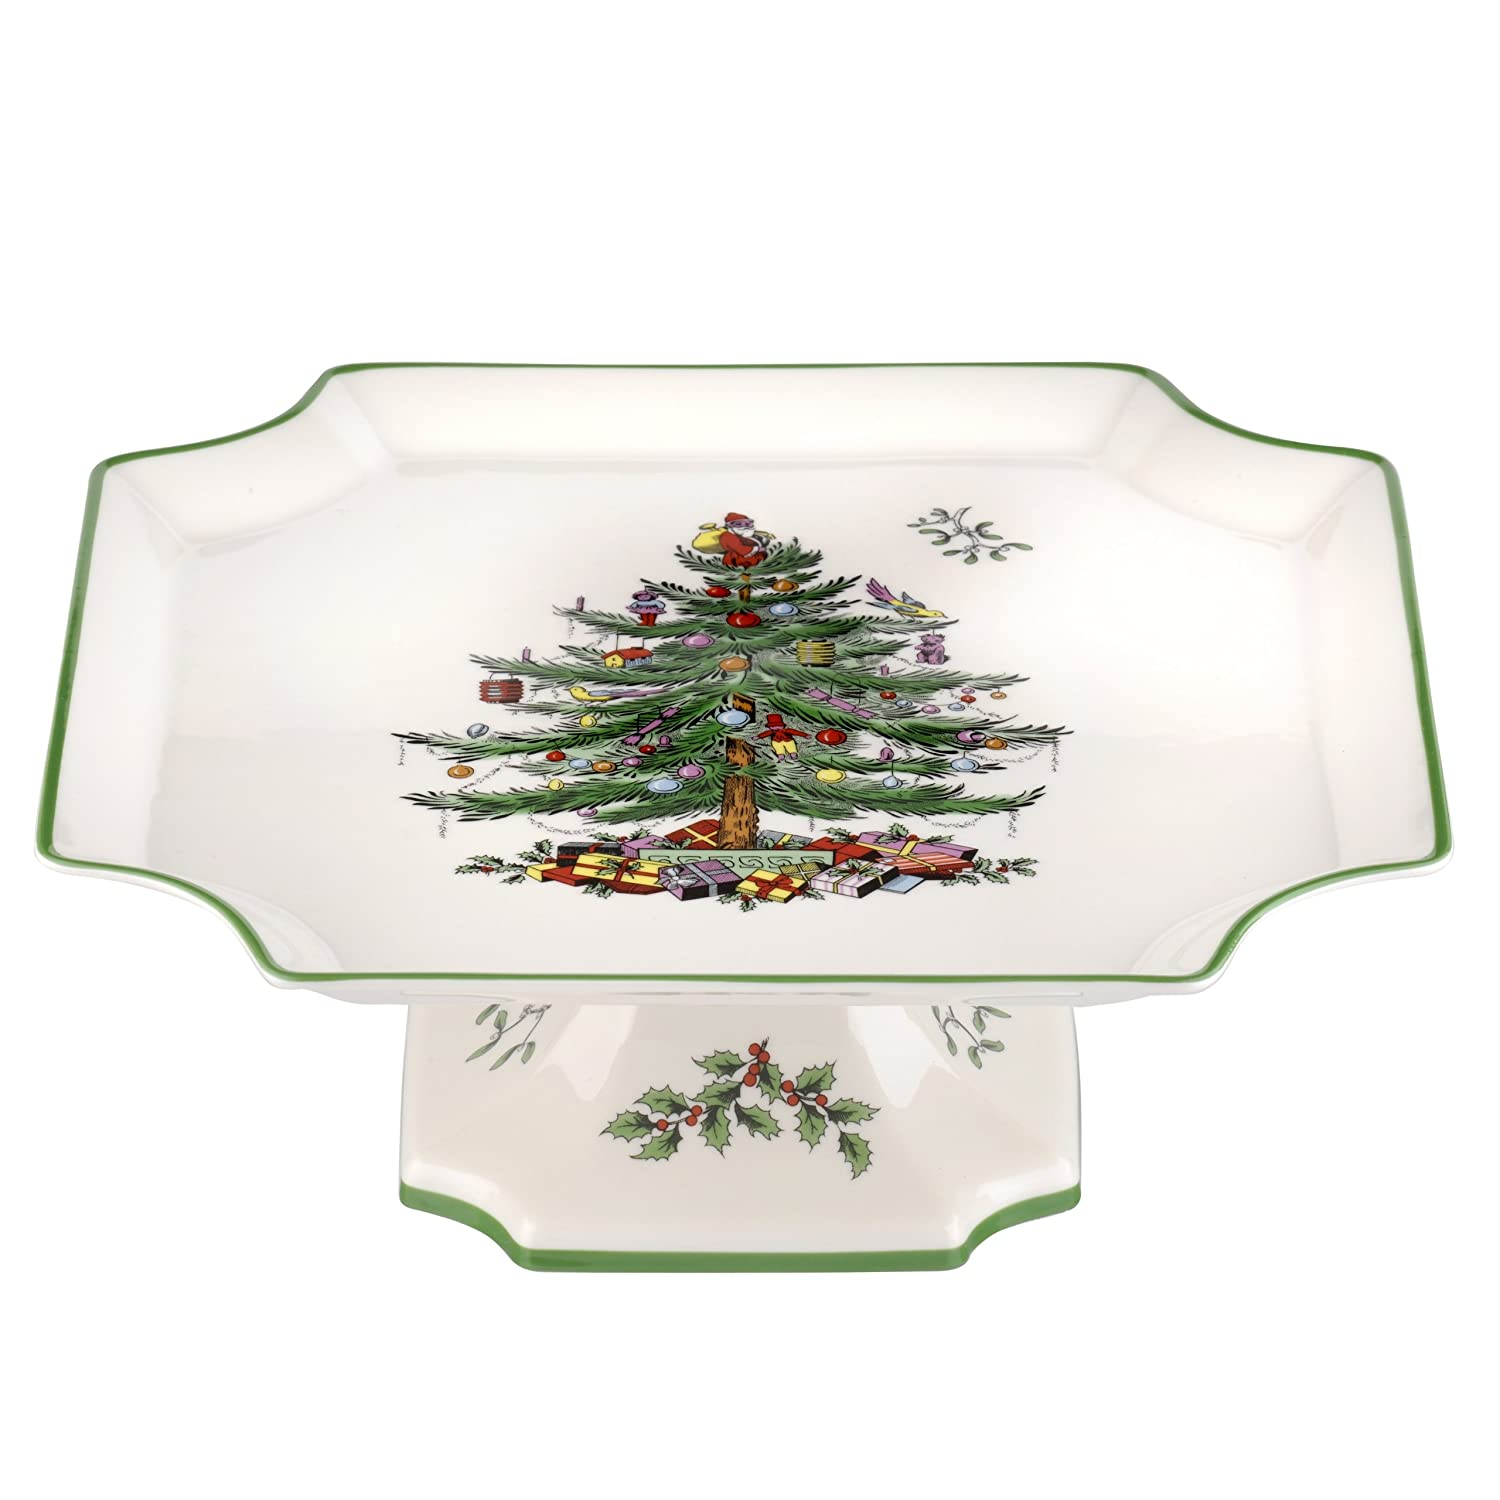 Amazon.com | Spode Christmas Tree Footed Square Cake Plate 10-Inch Dessert Plates Dessert Plates  sc 1 st  Amazon.com & Amazon.com | Spode Christmas Tree Footed Square Cake Plate 10-Inch ...